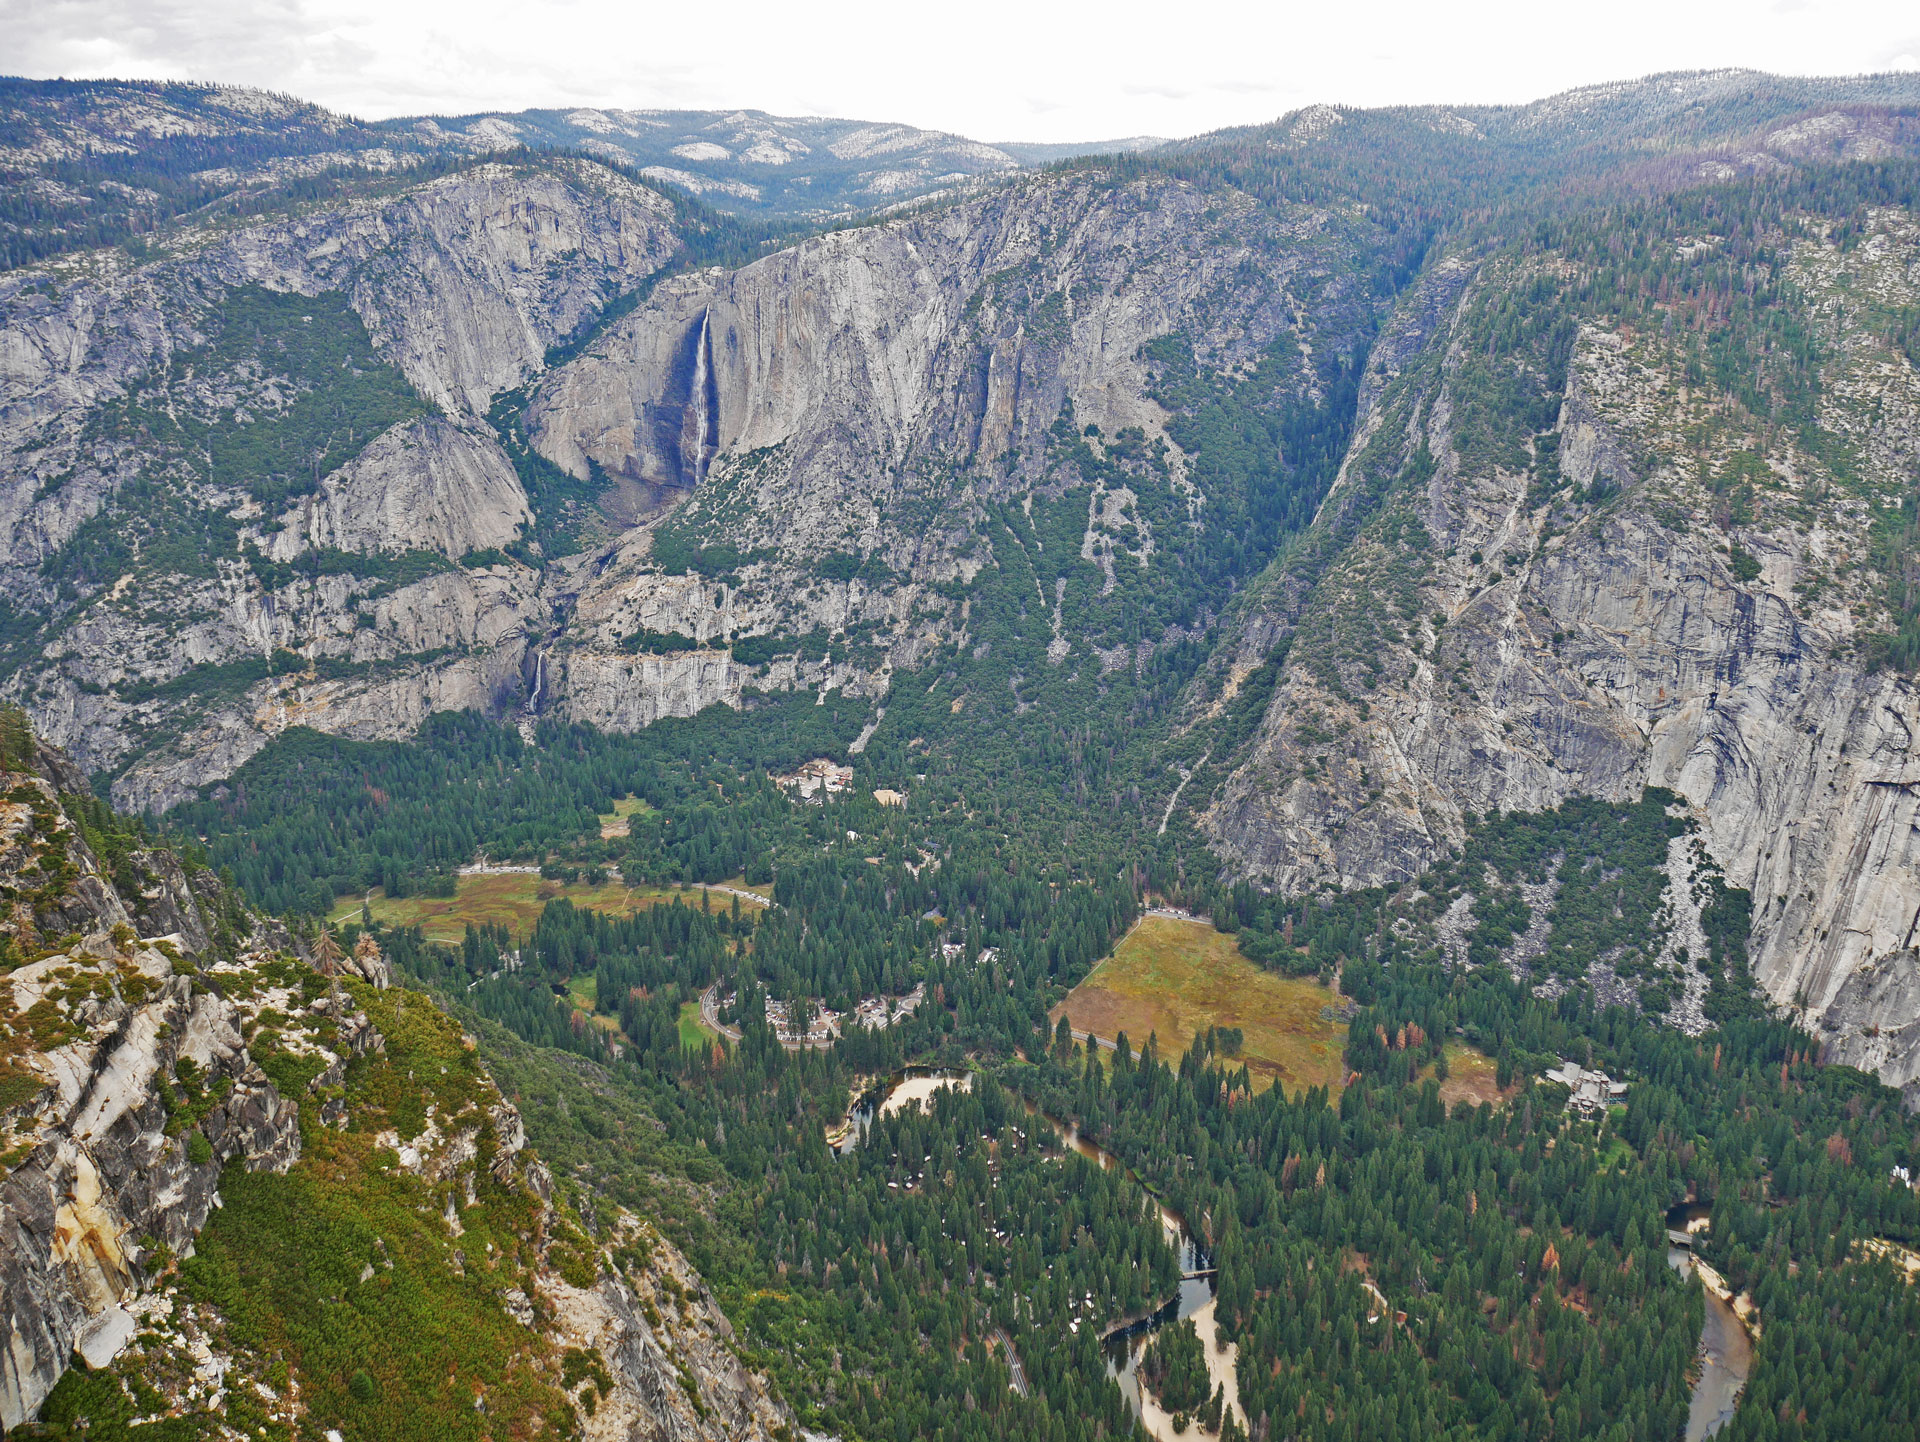 Glacier Point in Yosemite National Park with valley view